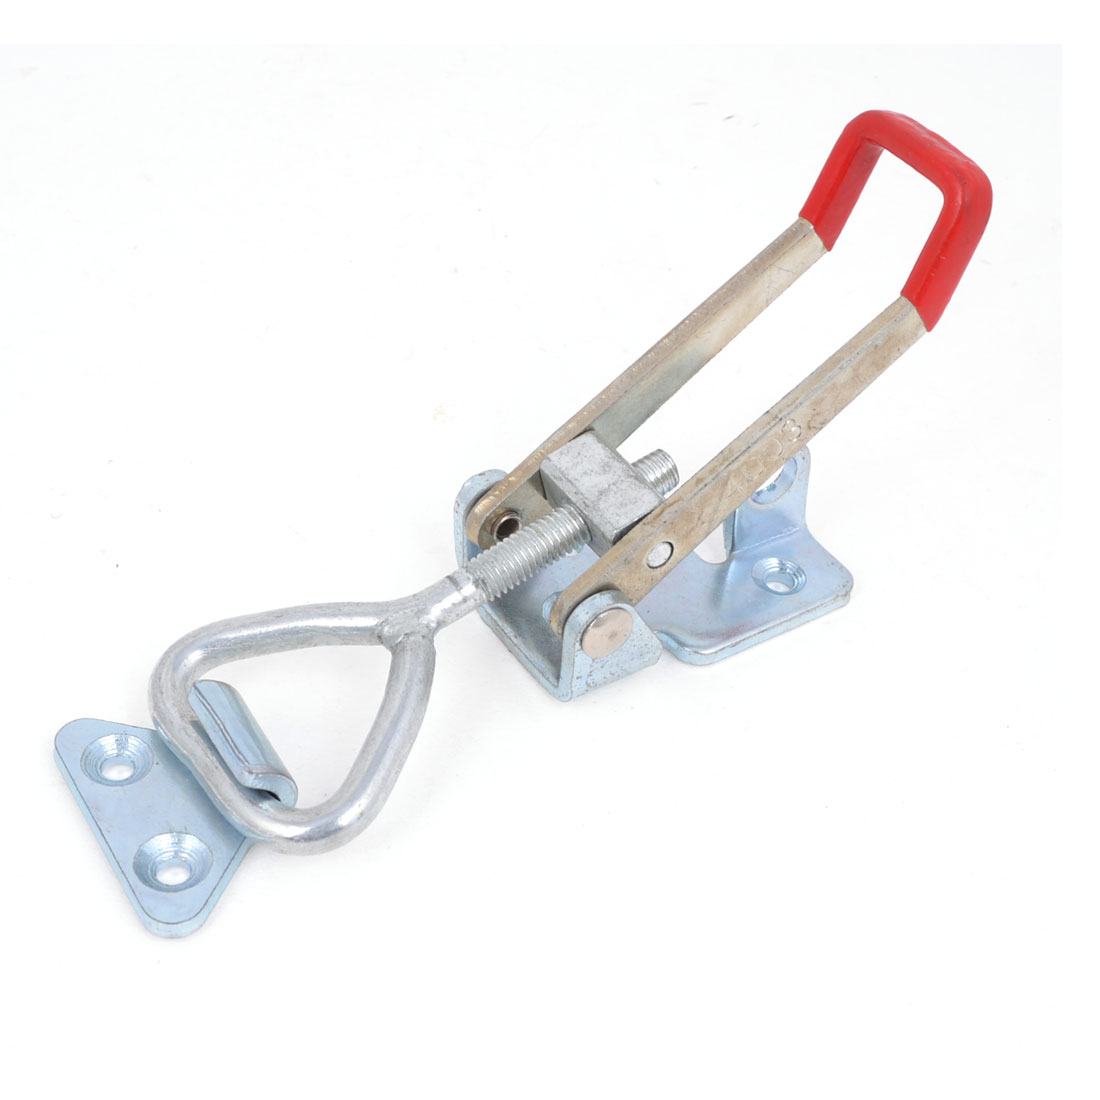 Plastic Cover Lever Door Button Type Metal U Nonslip Handle Triangle Shaped Lever Holding Capacity 300Kg 661 Lbs Latch Toggle Clamp 4003